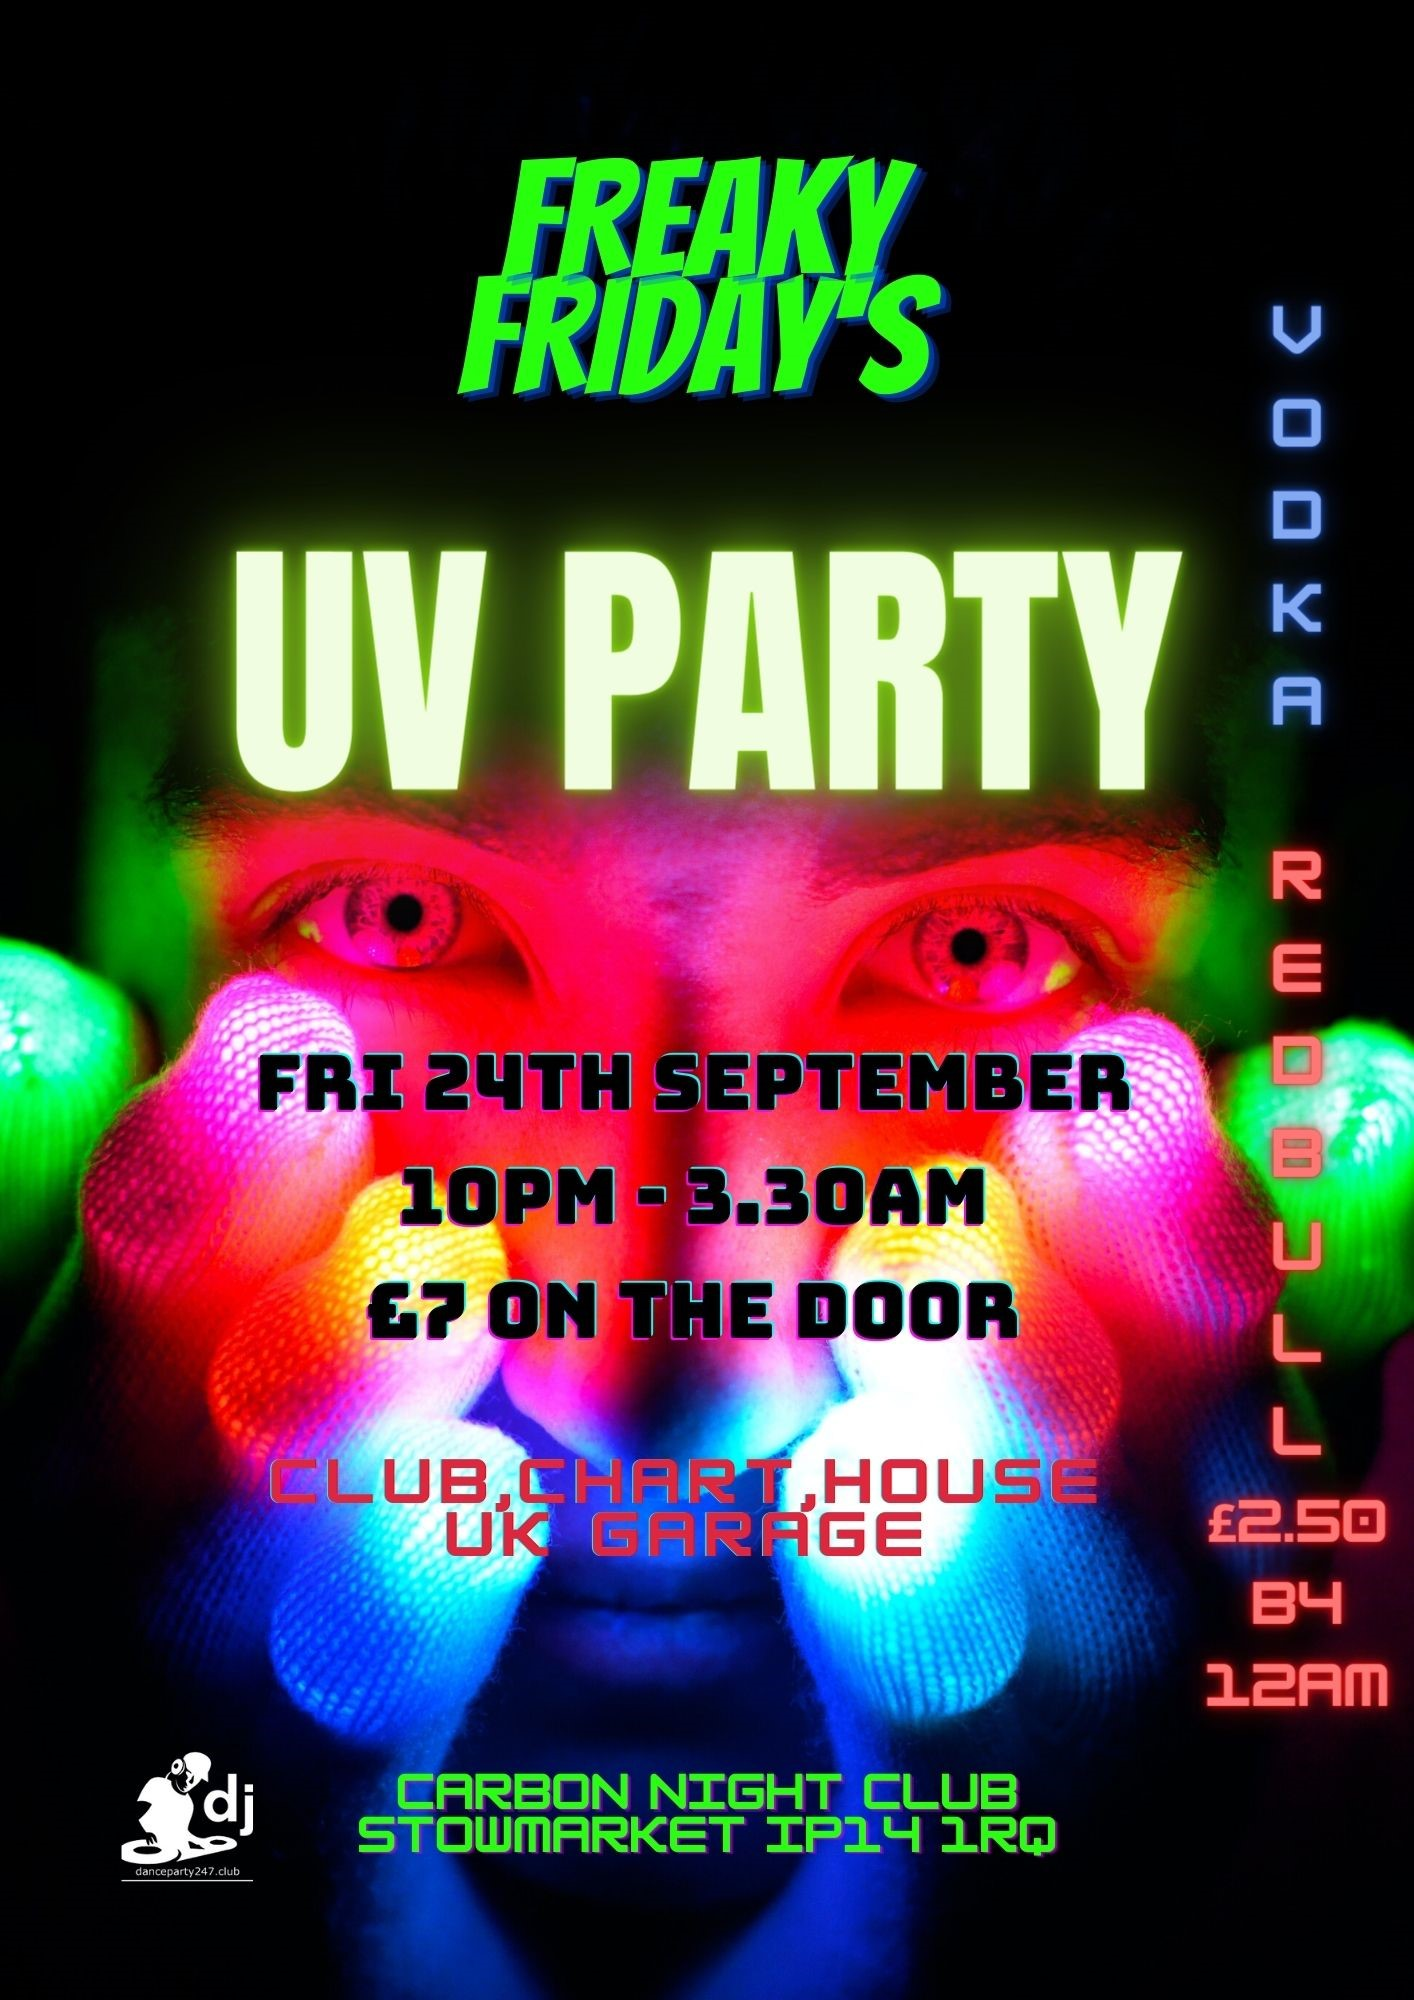 UV Party Freaky Friday's on Sep 24, 22:00@Carbon - Buy tickets and Get information on www.danceparty247.club